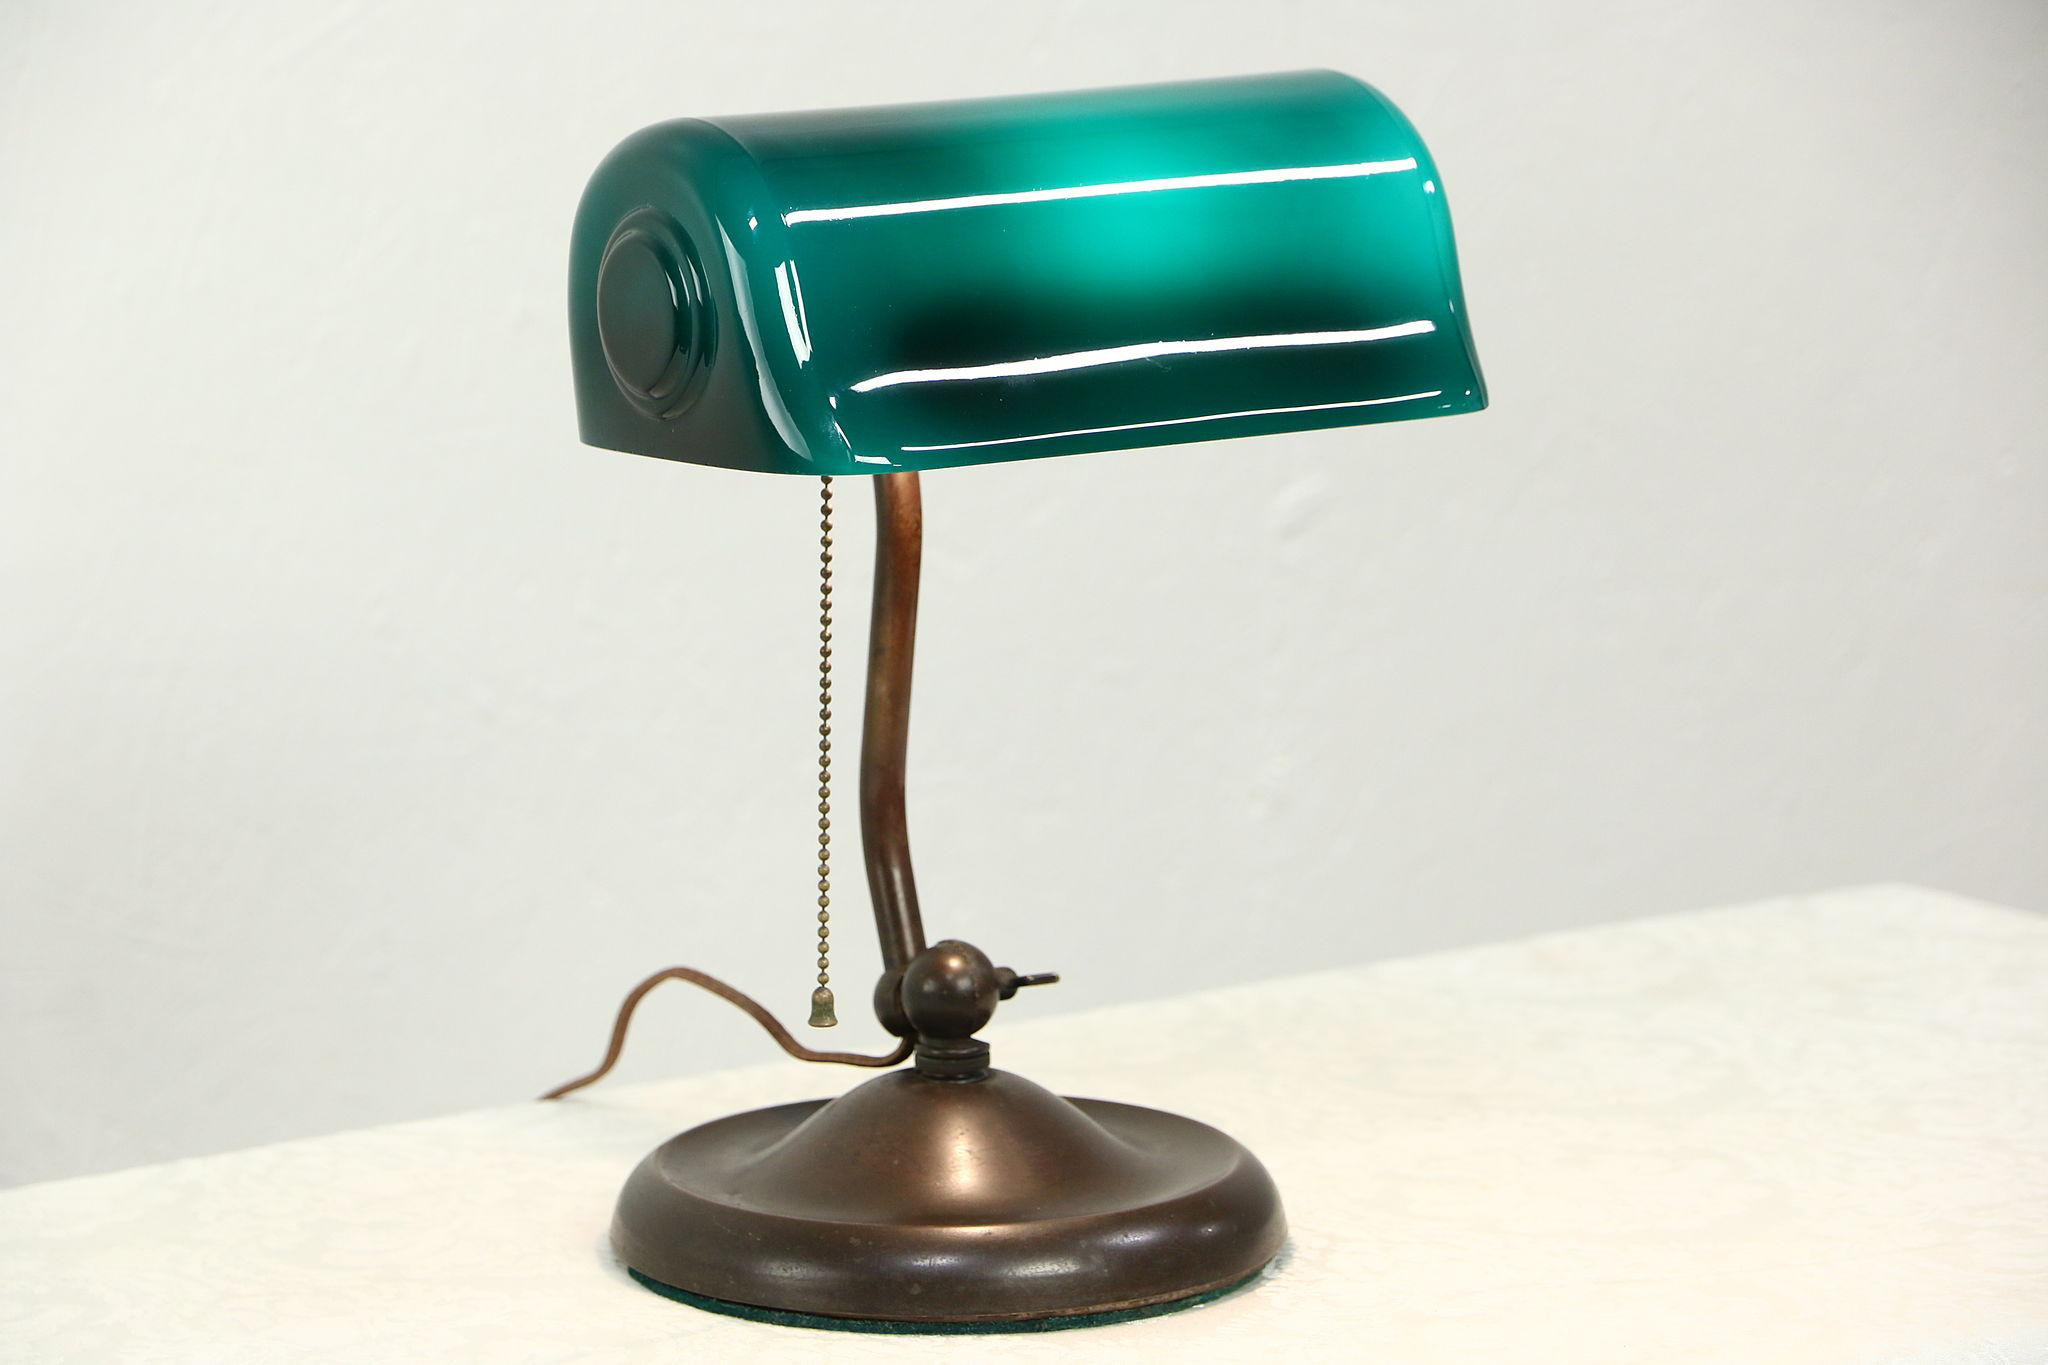 Sold Verdelite Antique Banker Lamp For Rolltop Desk Or